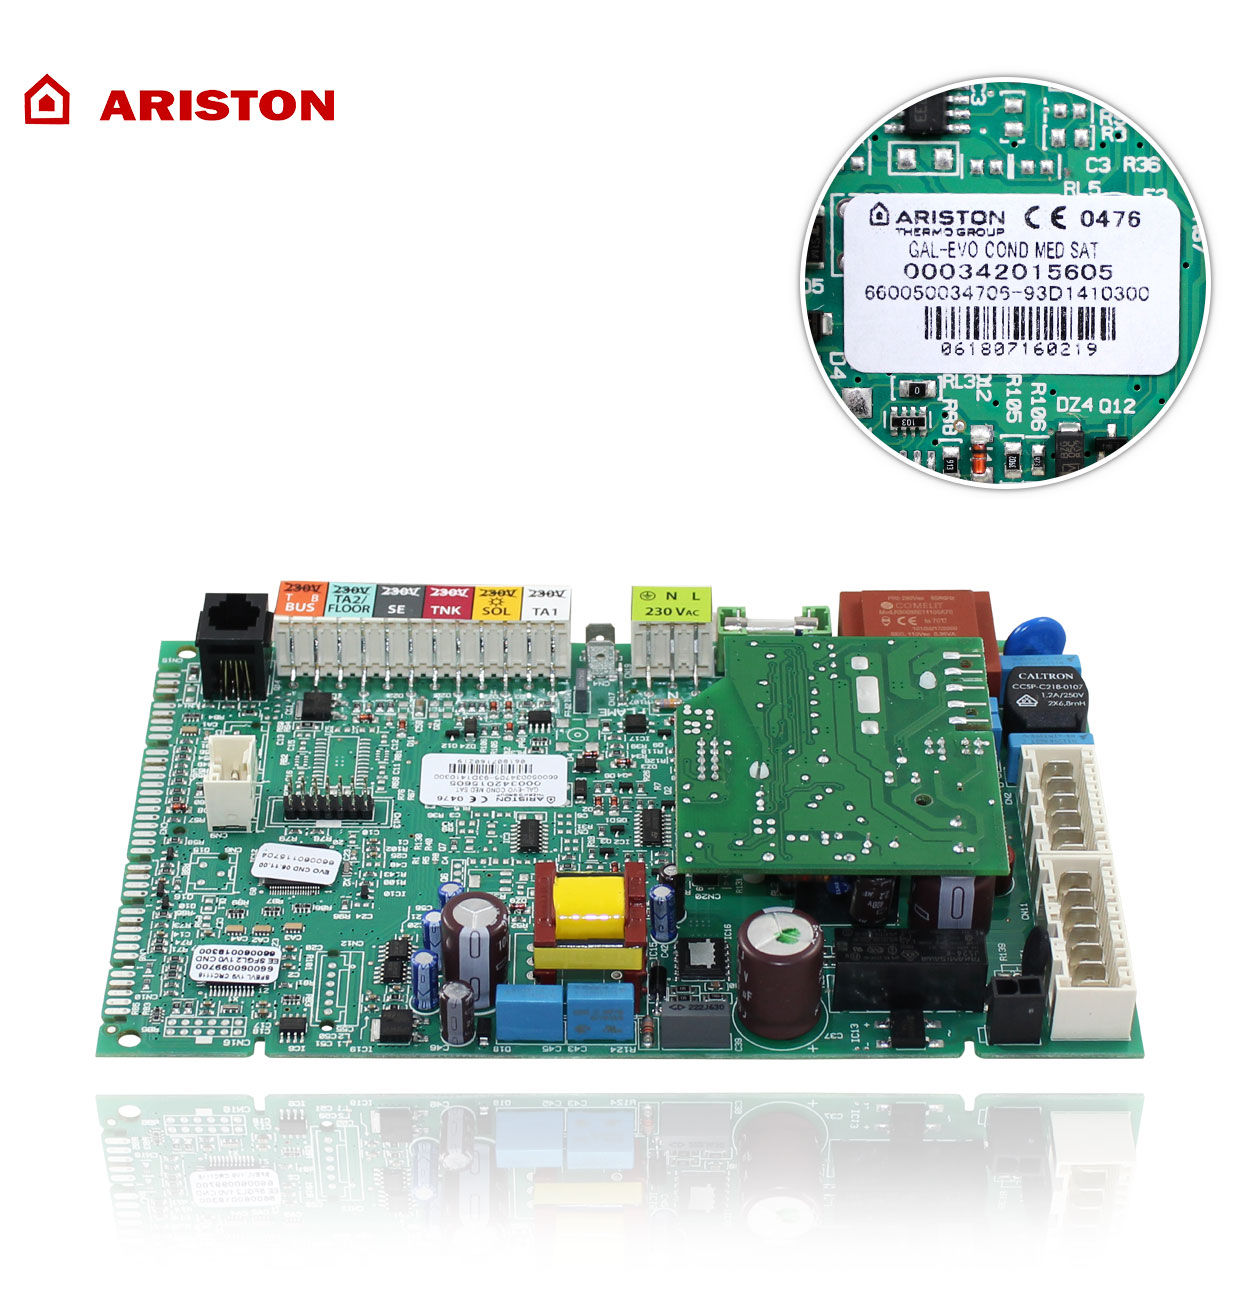 CIRCUITO EGIS PREMIUM 24 ARISTON 60001899-03